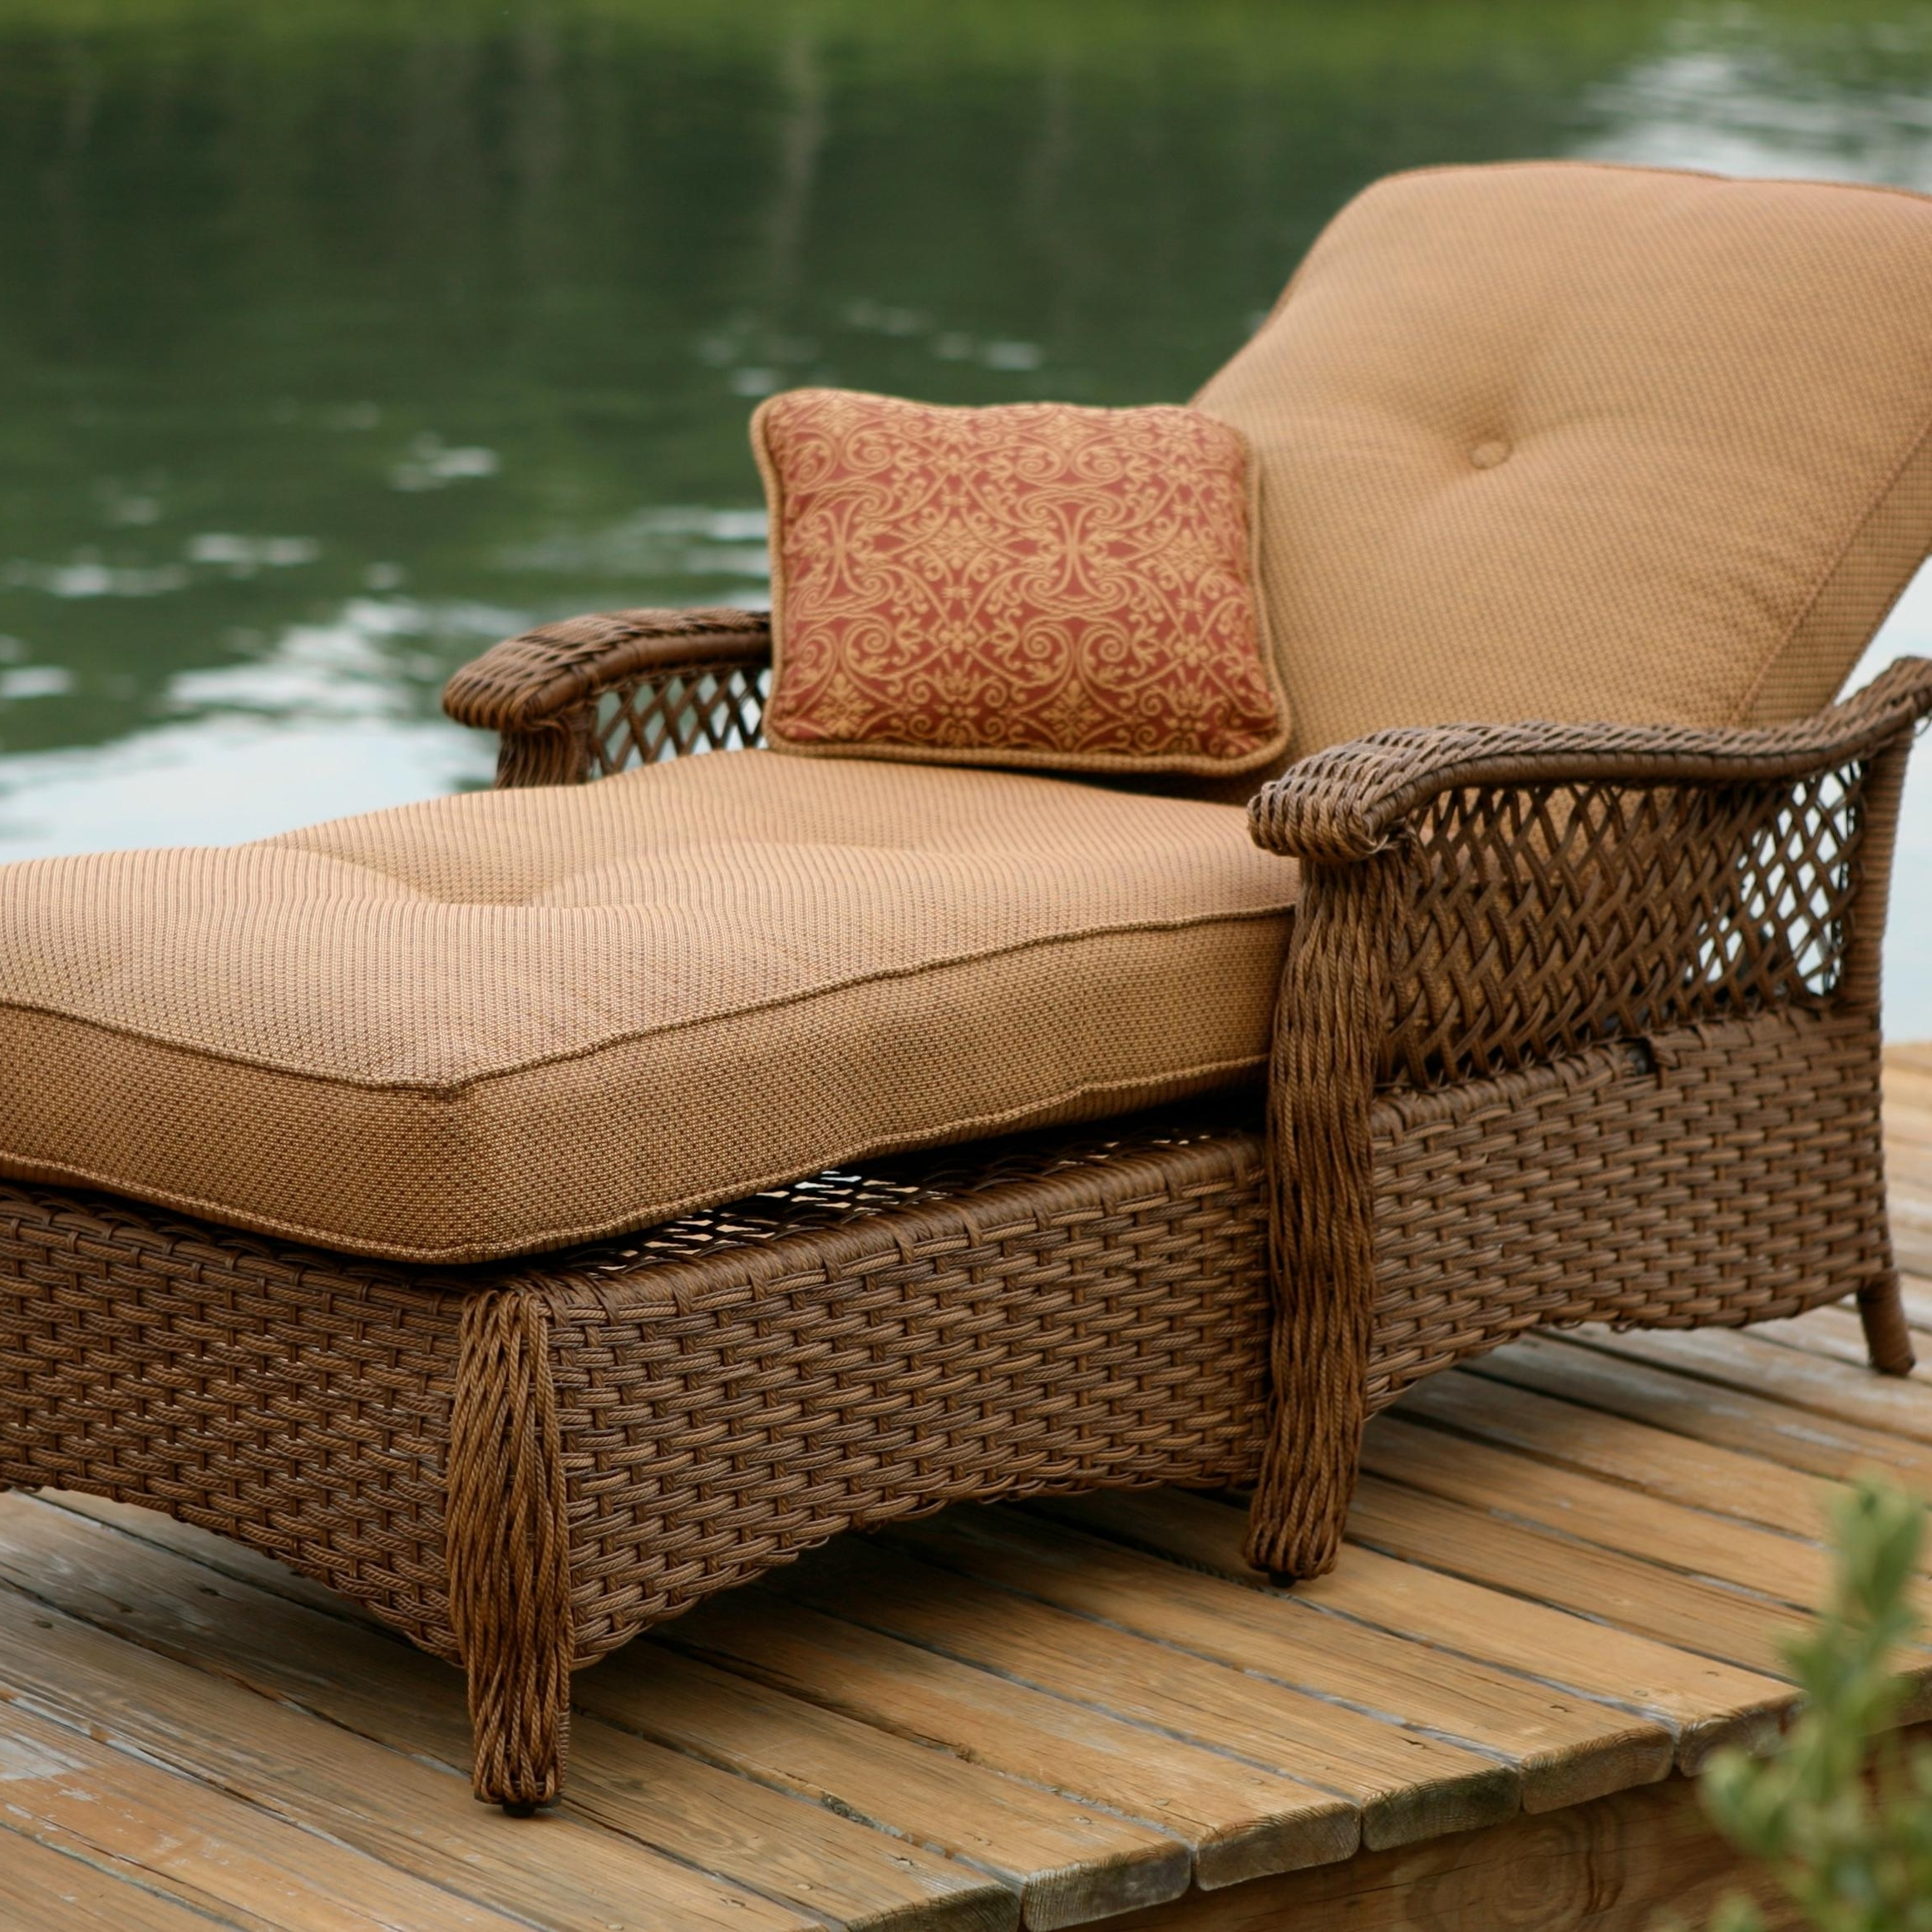 Famous Agio Veranda–Agio Outdoor Tan Woven Chaise Lounge Chair With Seat Within Patio Chaise Lounge Chairs (View 2 of 15)